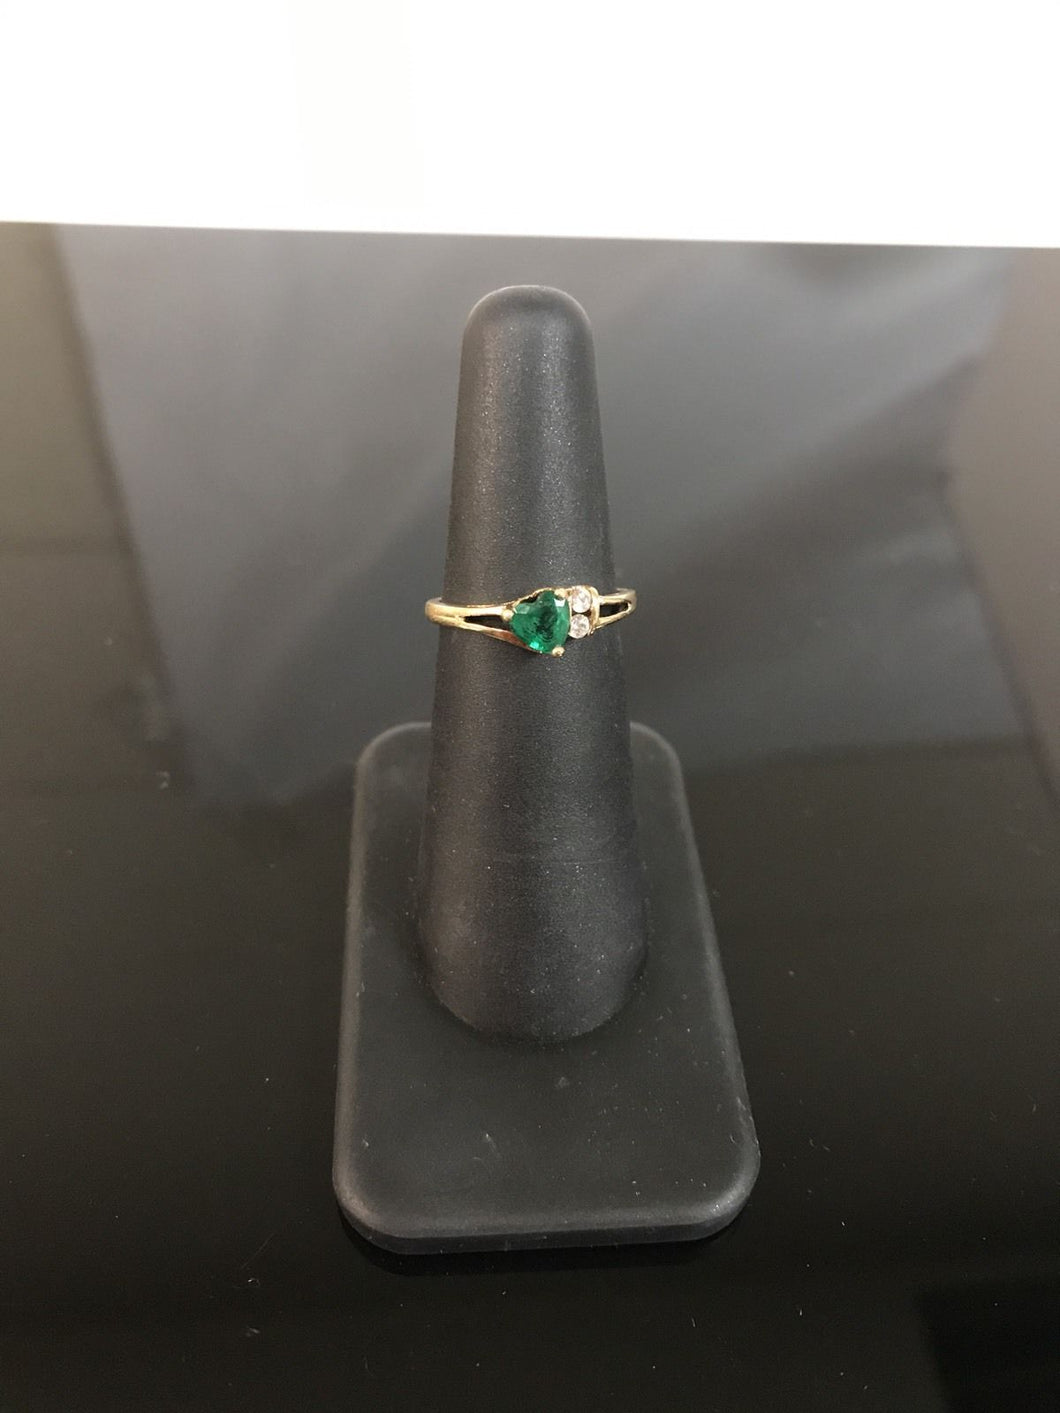 10k Yellow Gold Ring with Simulated Emerald Heart & Cubic Zirconia Accents